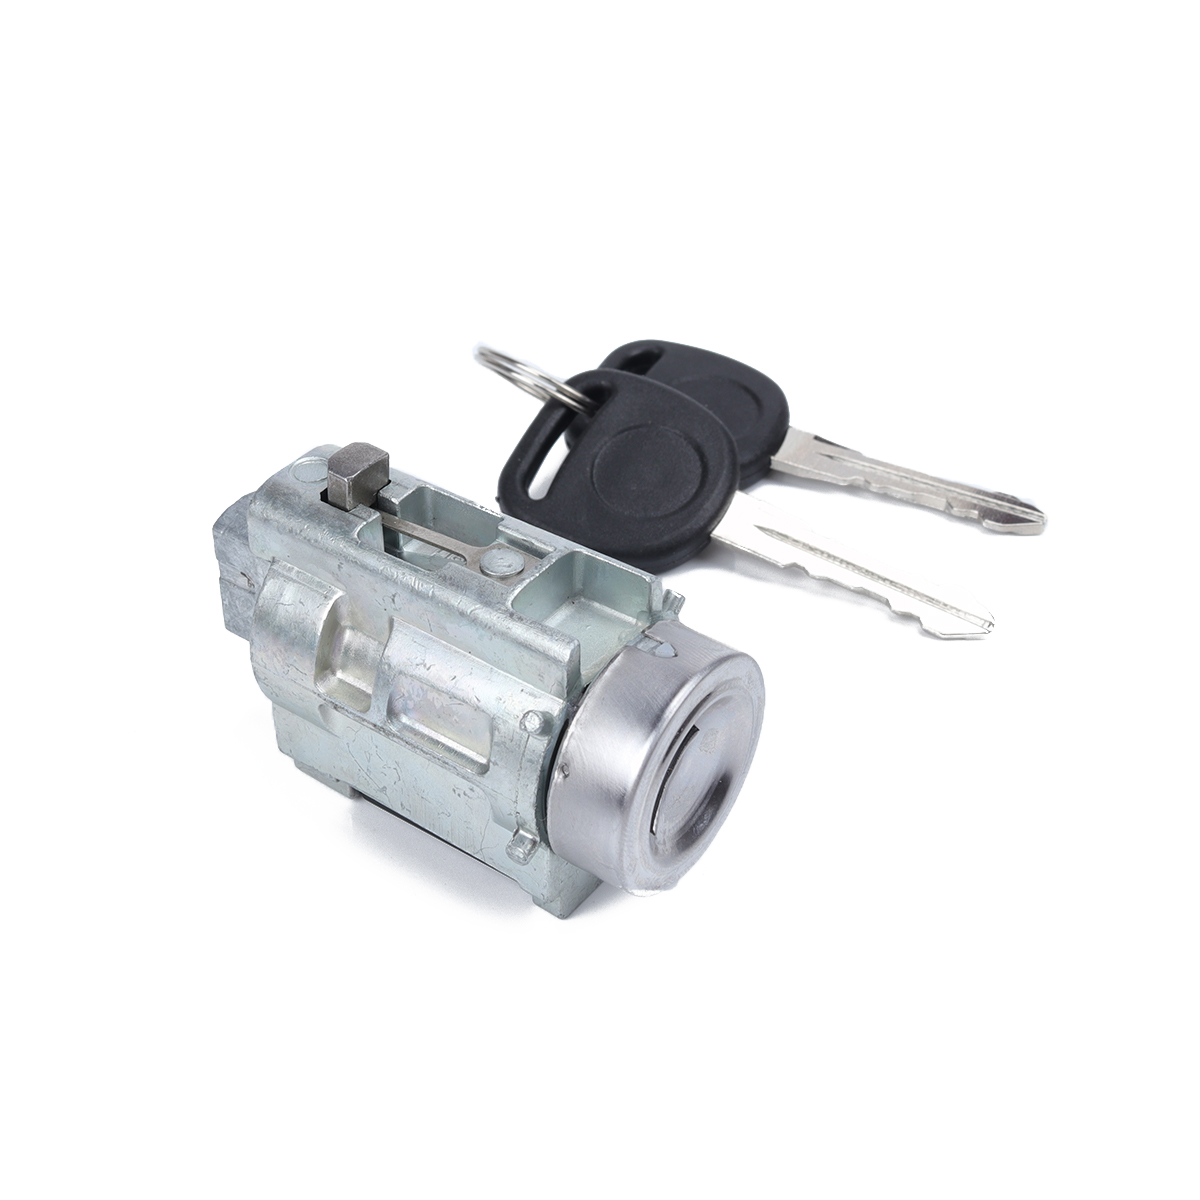 Car Ignition Switch For CHEVROLET CLASSIC 2004-2005 12458191 12533953 Car Decoration Accessories Car Ignition Lock